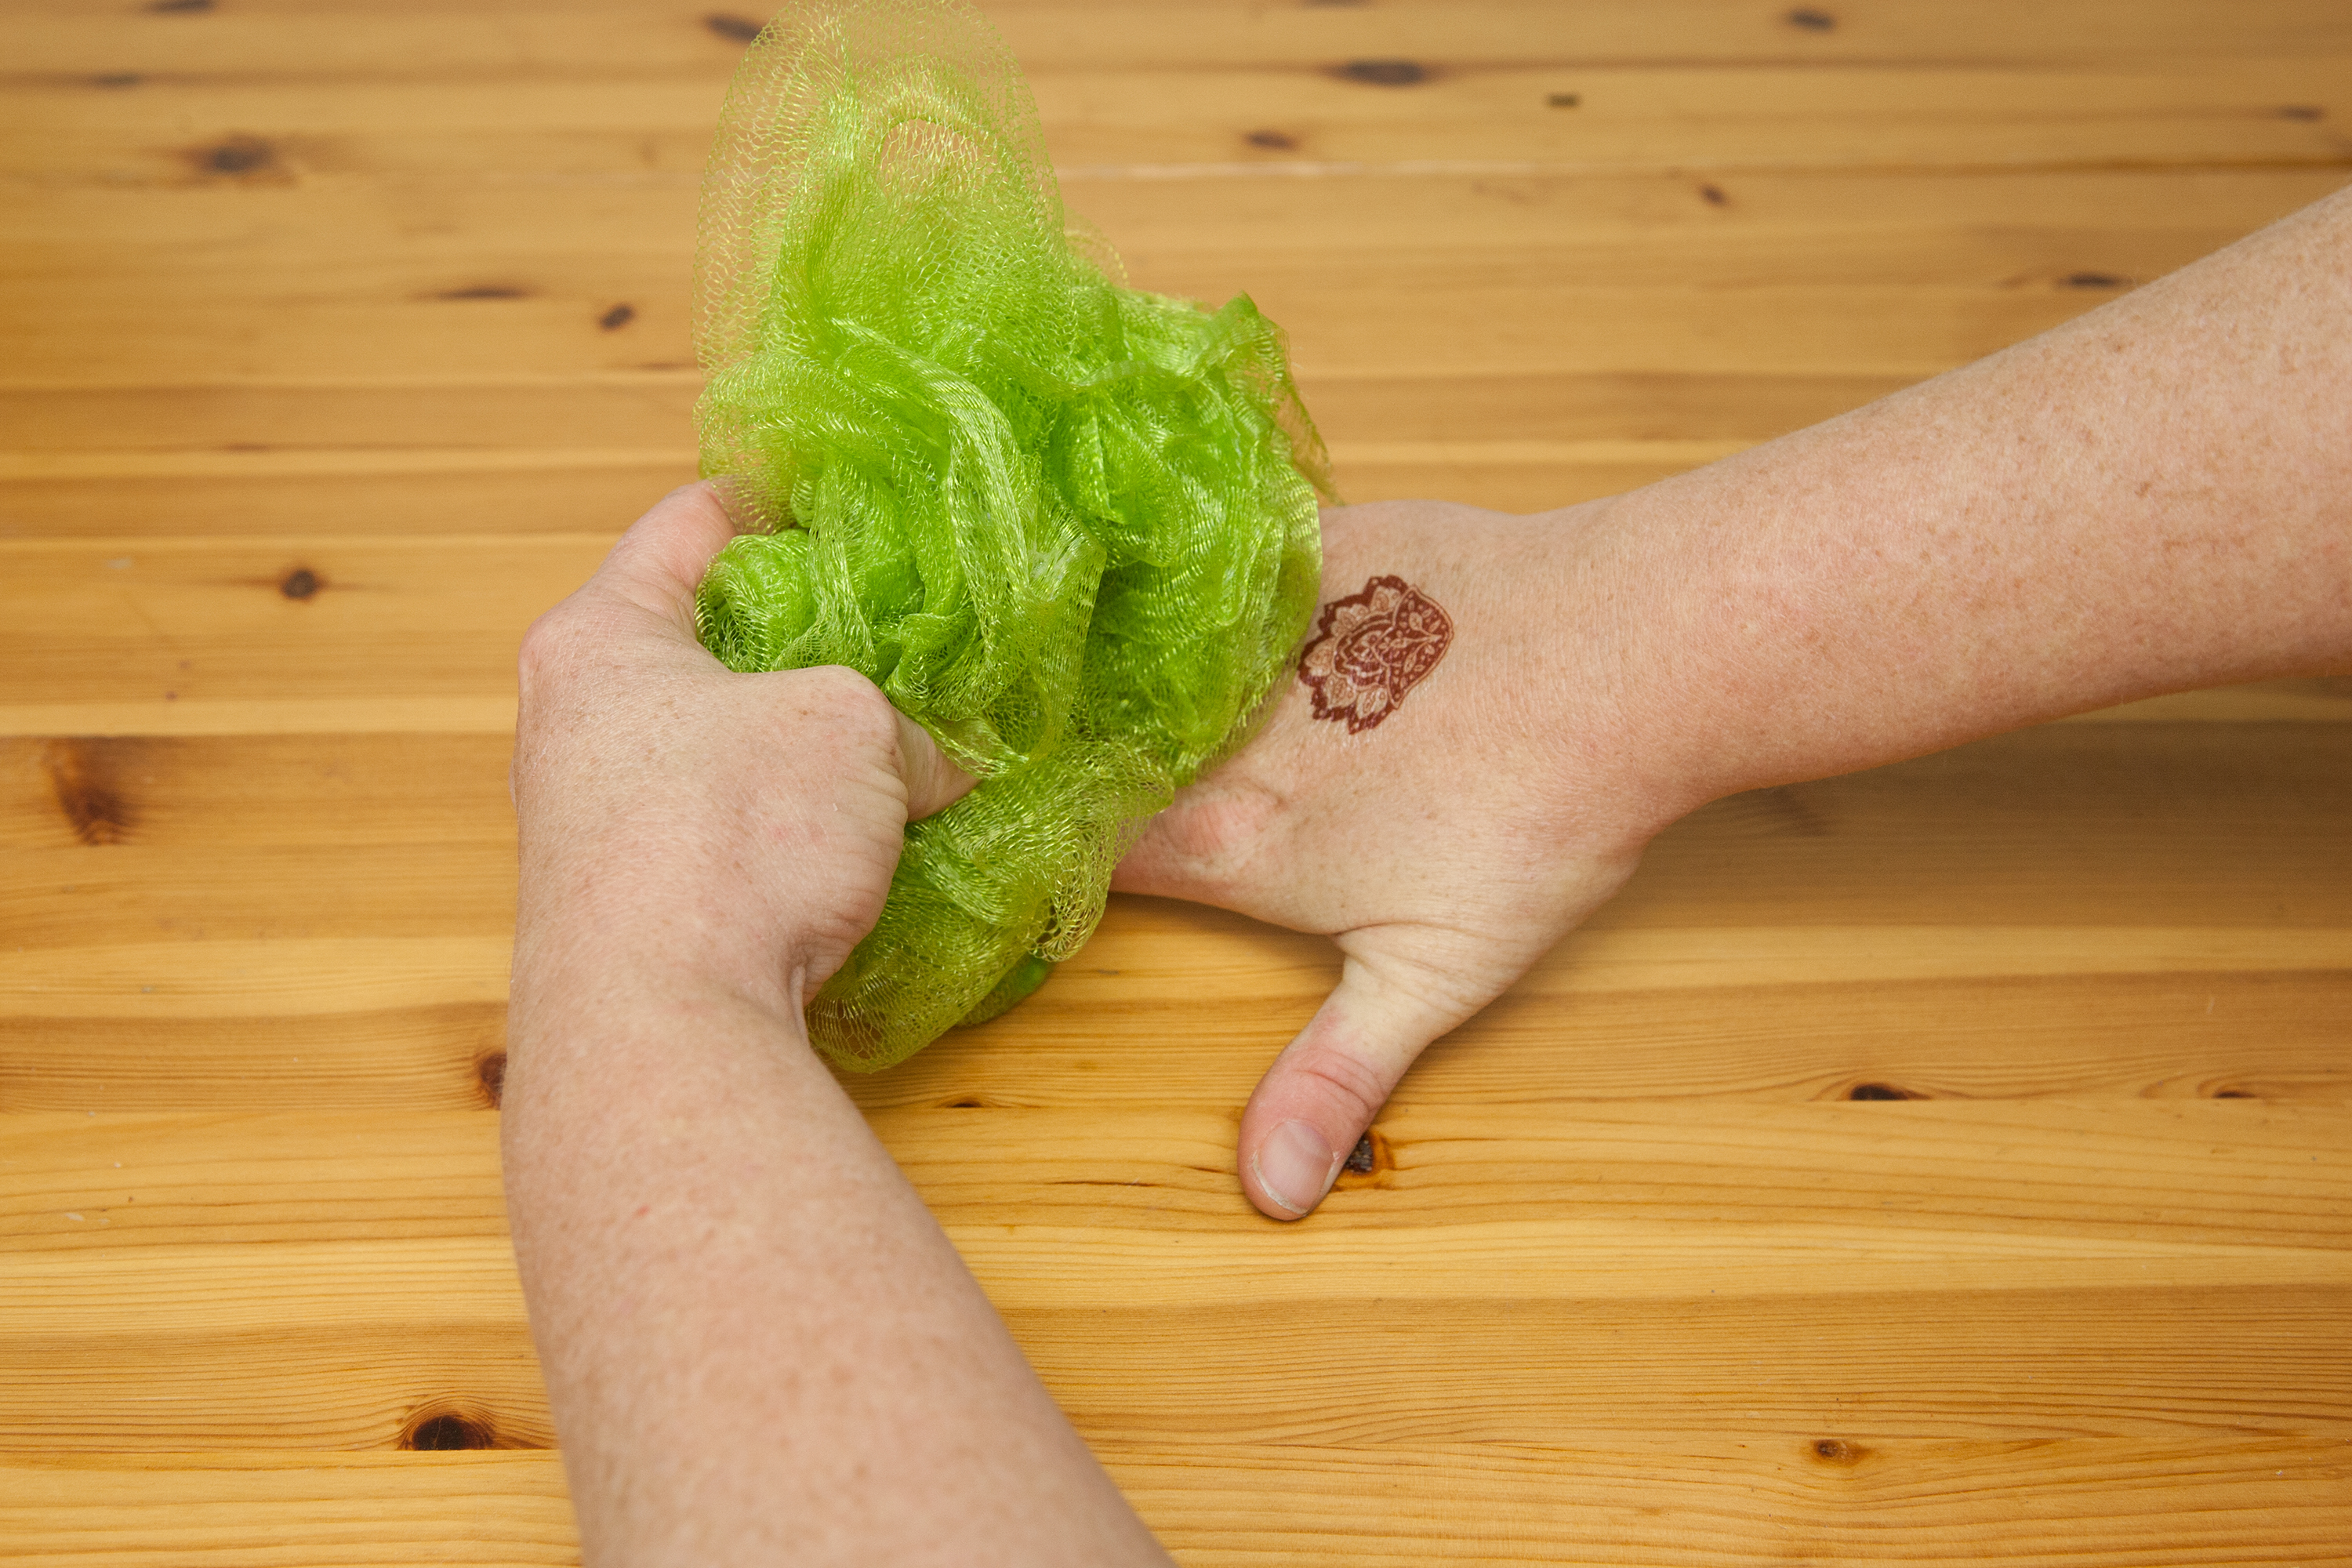 Rub the henna tattoo with a loofah during your daily shower. The use ...